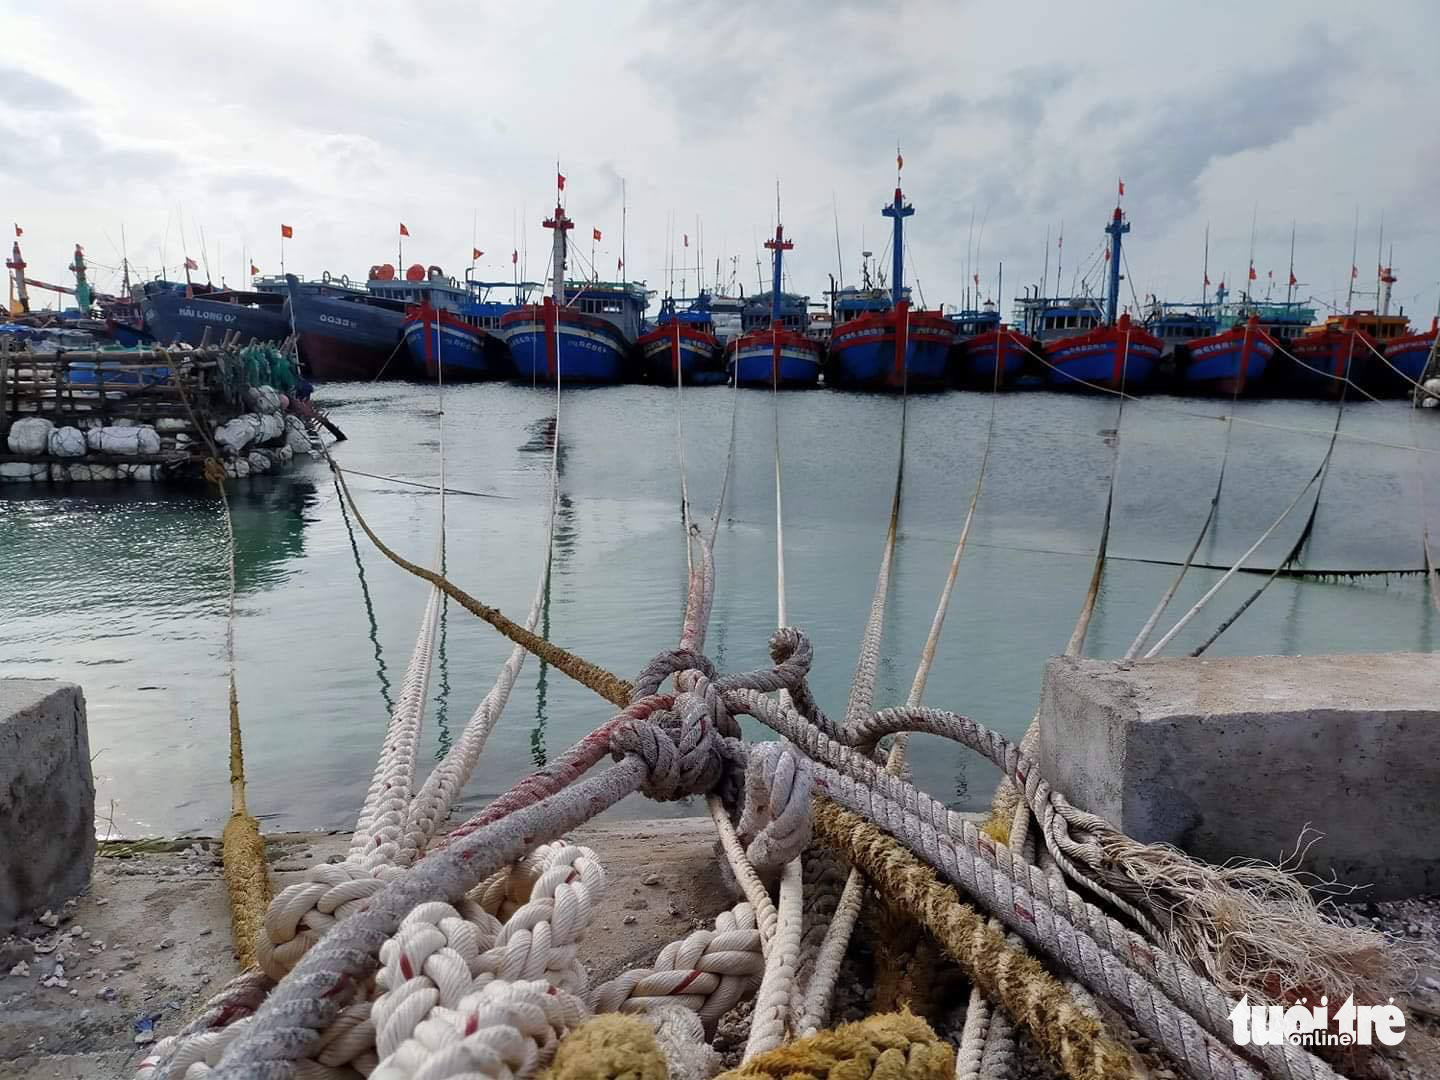 Fishing boats are docked in Quang Ngai Province, Vietnam, October 27, 2020. Photo: Chi Tam / Tuoi Tre